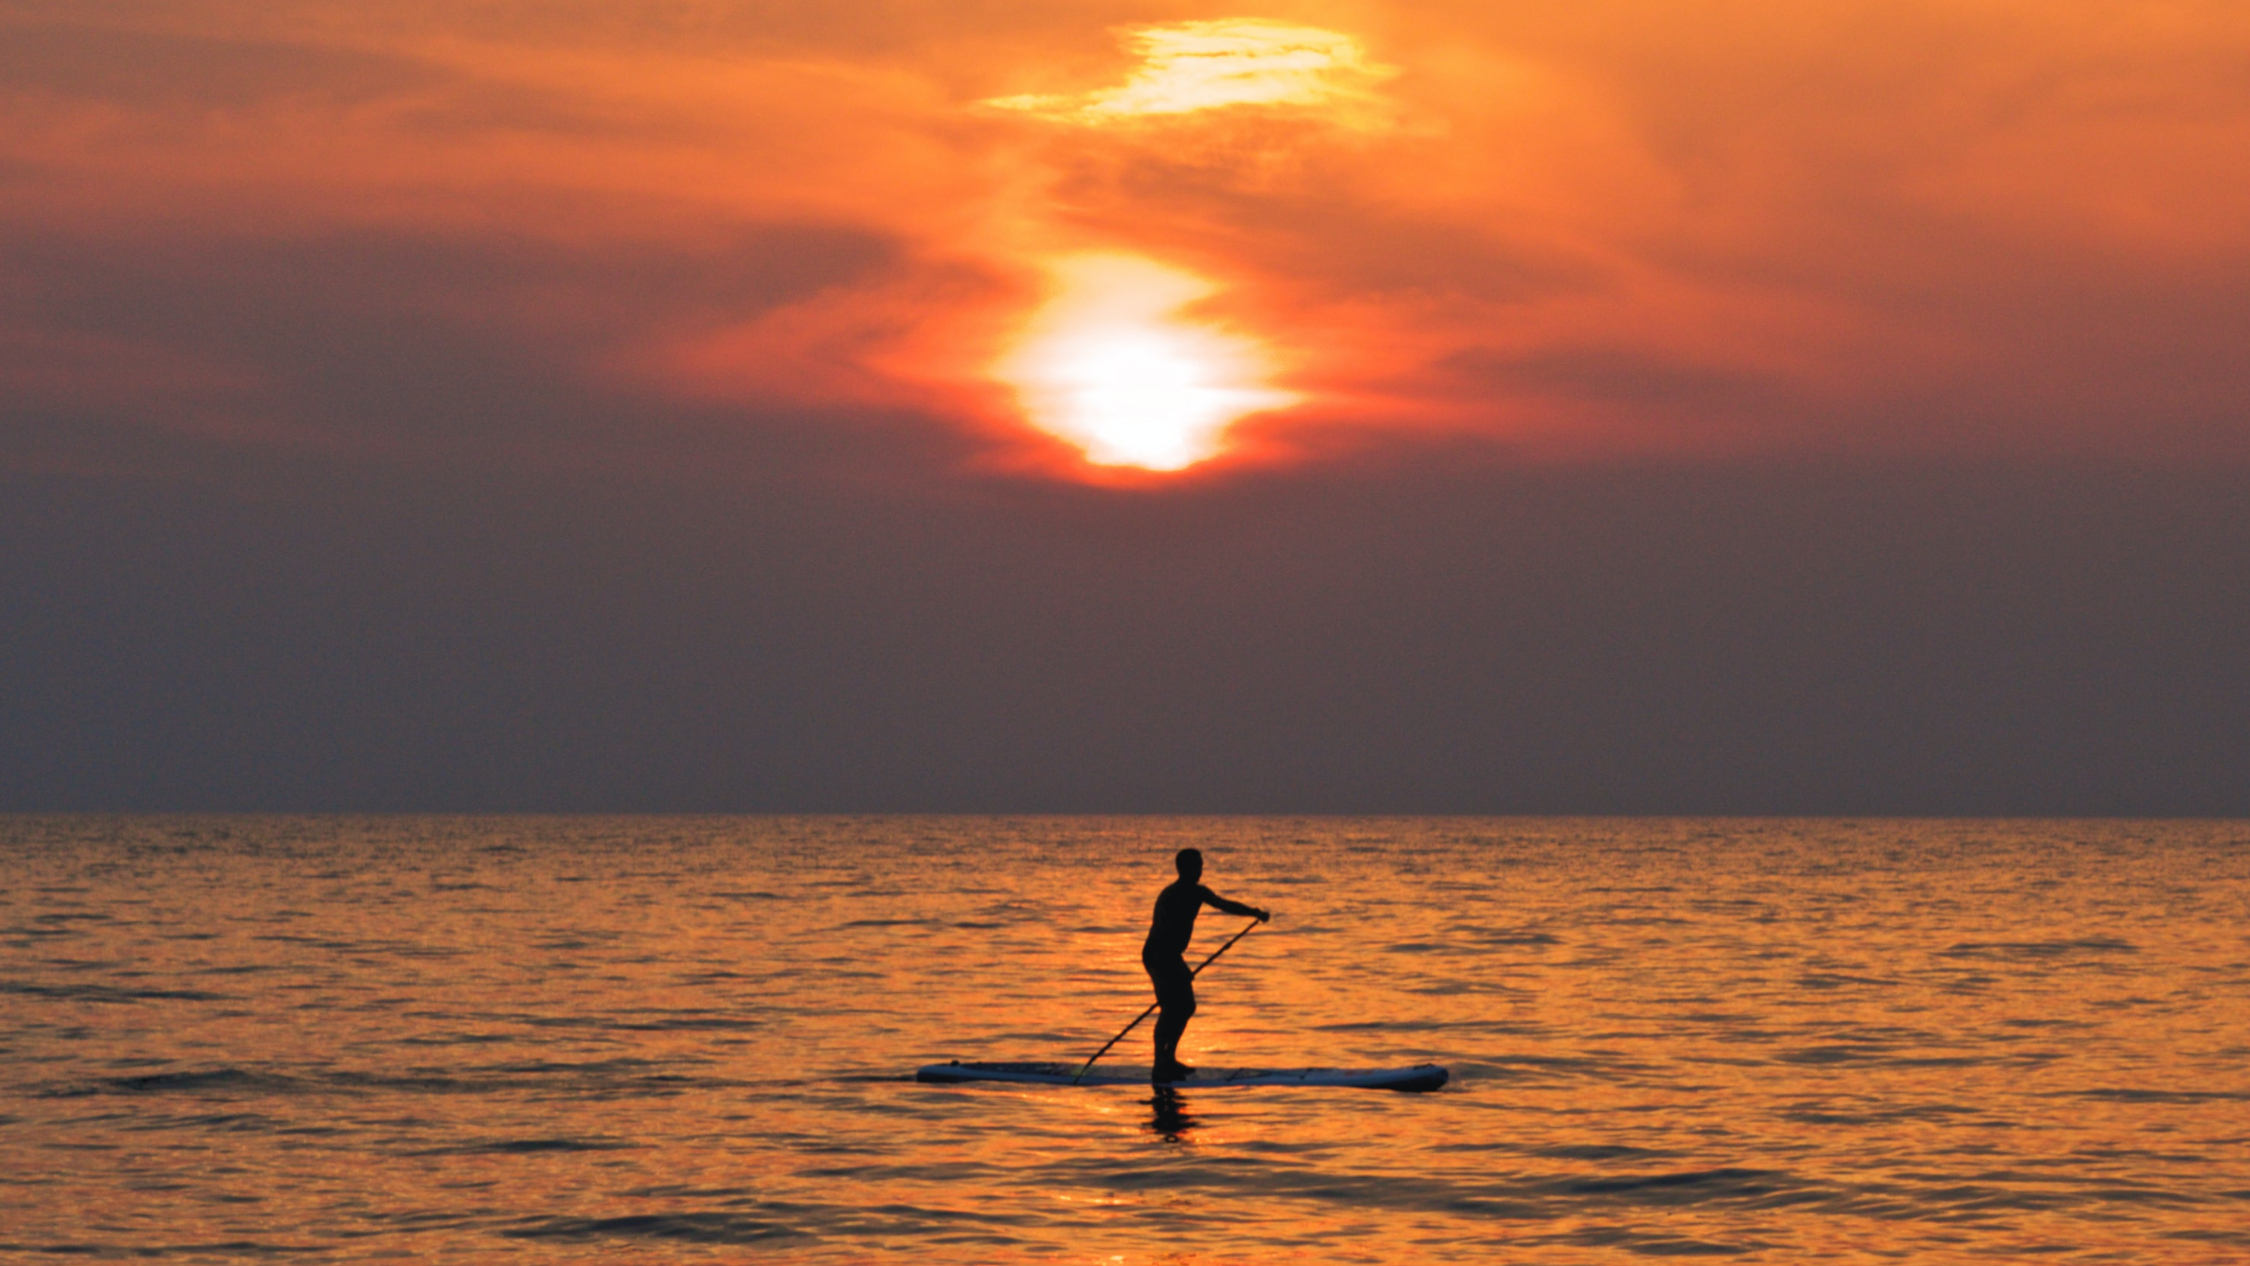 A solitary paddleboarder on the sea